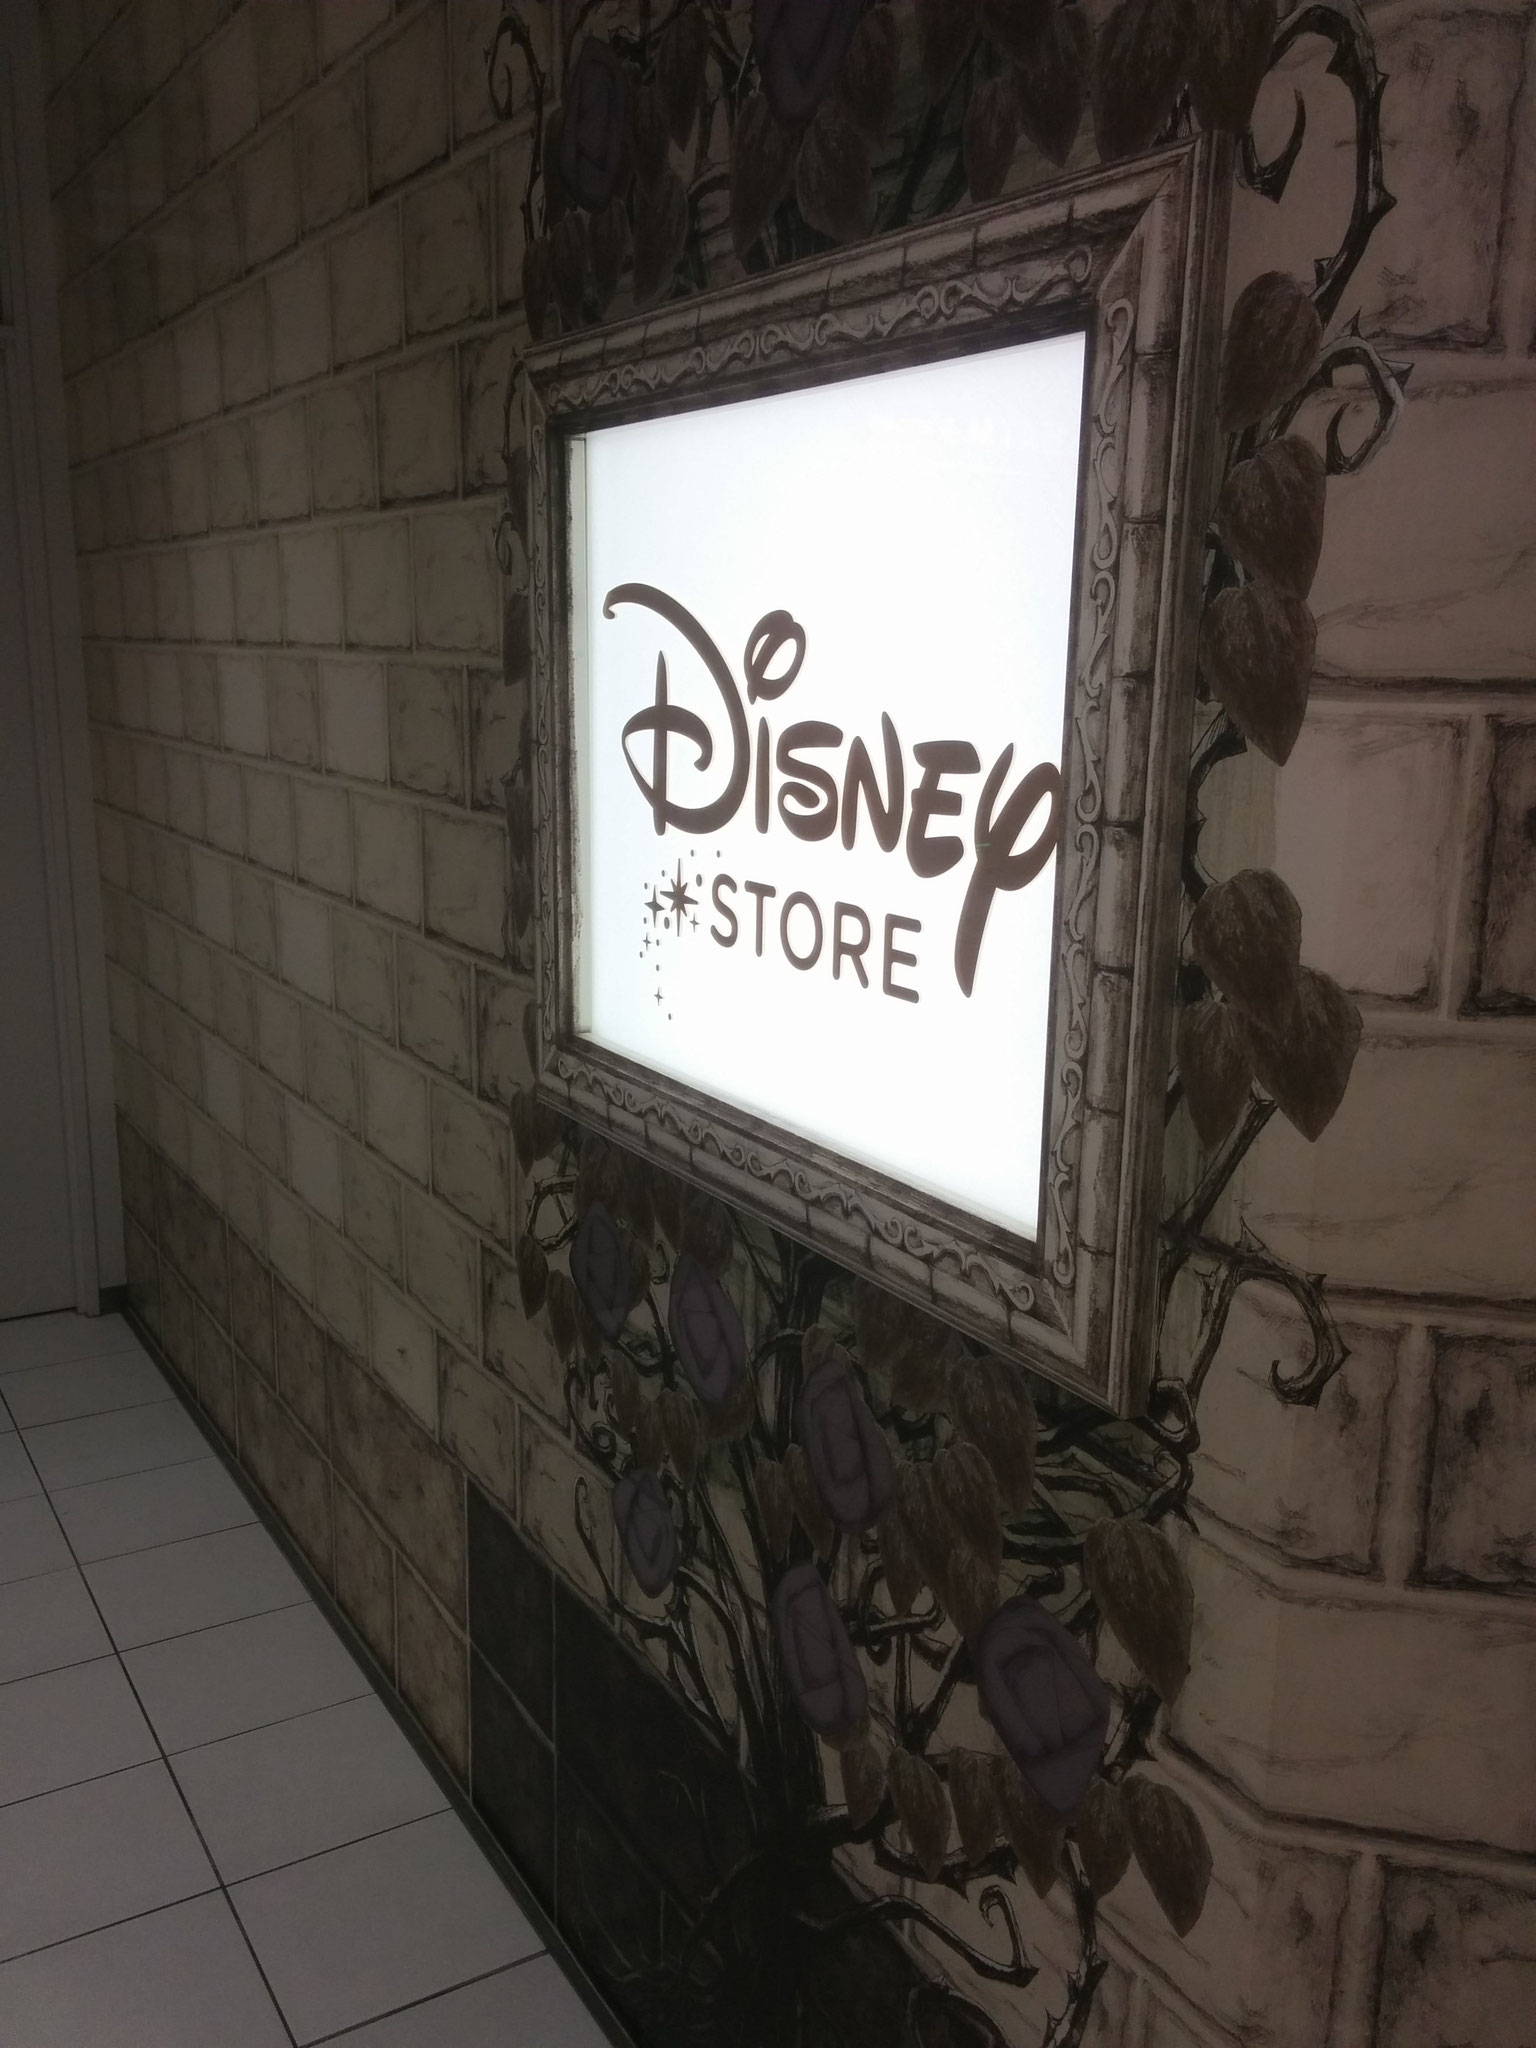 6 Yeah, they have Disney stores with pricey Disney merch, mostly kids were there